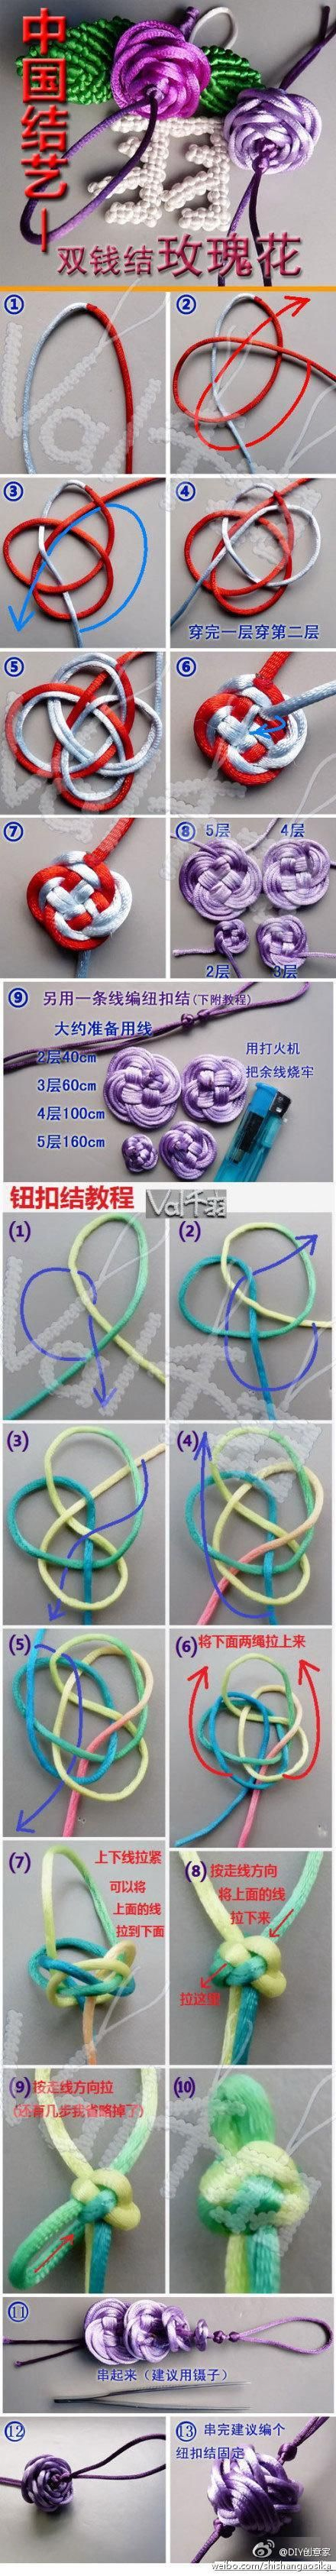 Chinese knot ornament tutorial (also good for pendants, bracelets etc.)